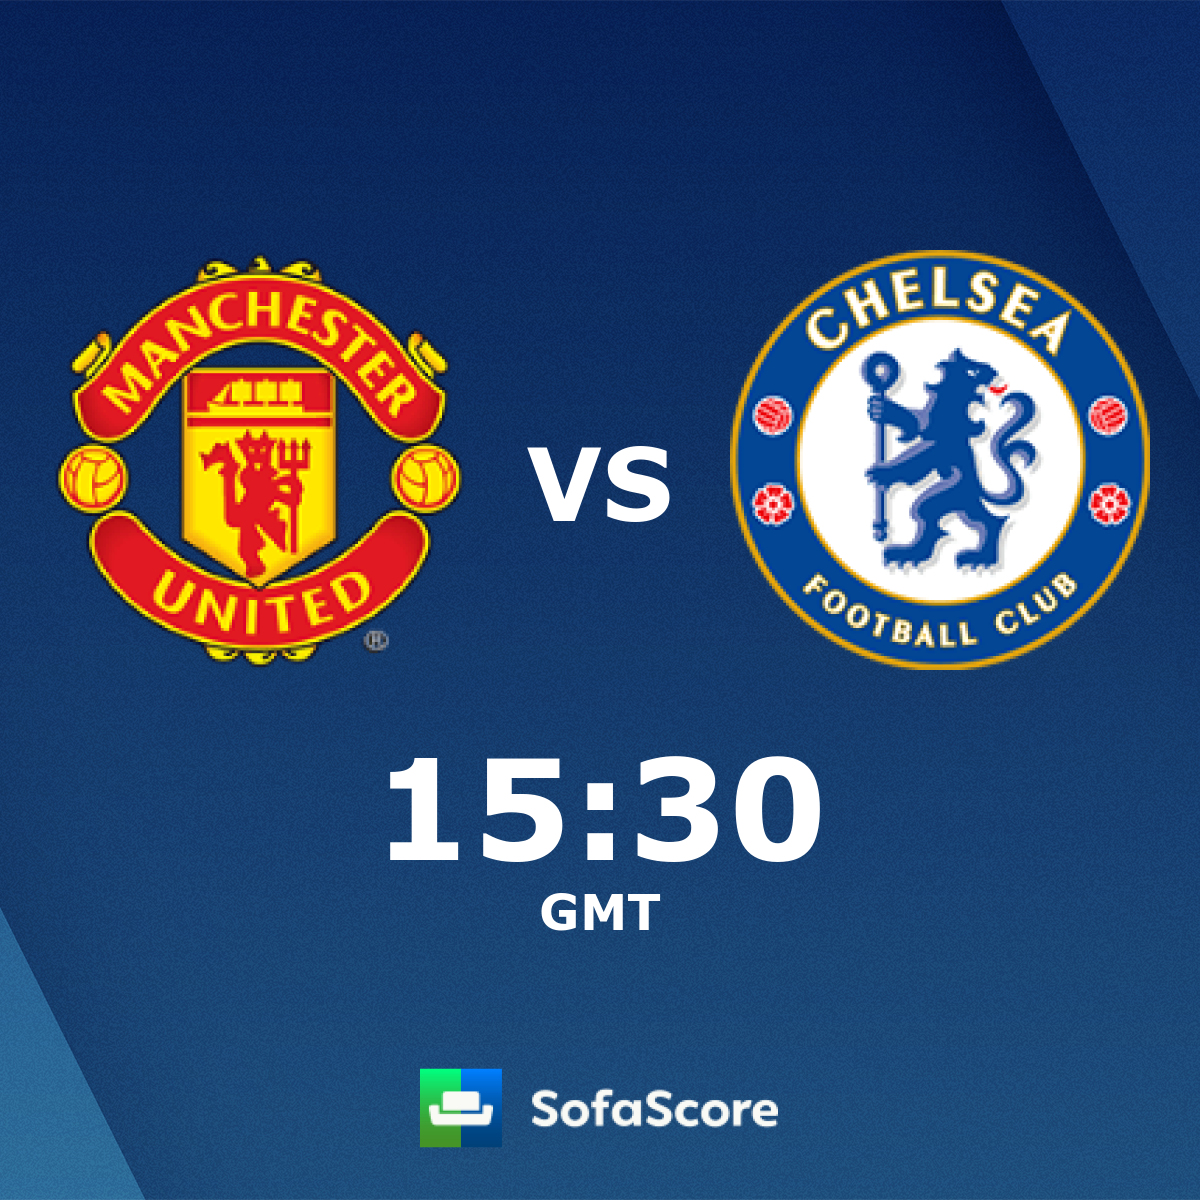 Sofascore Live Games Today Manchester United Chelsea Live Score Video Stream And H2h Results